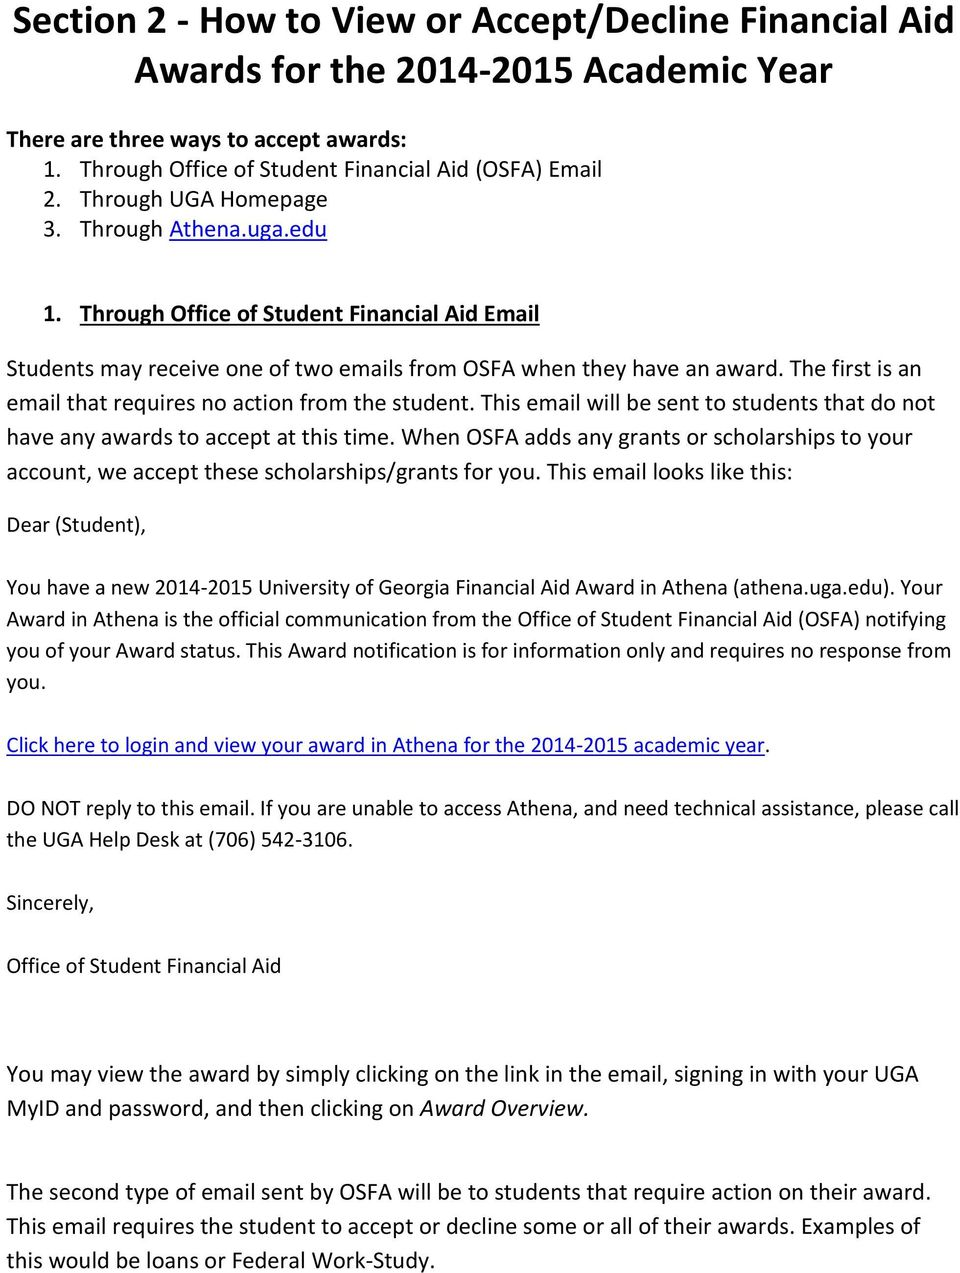 The first is an email that requires no action from the student. This email will be sent to students that do not have any awards to accept at this time.